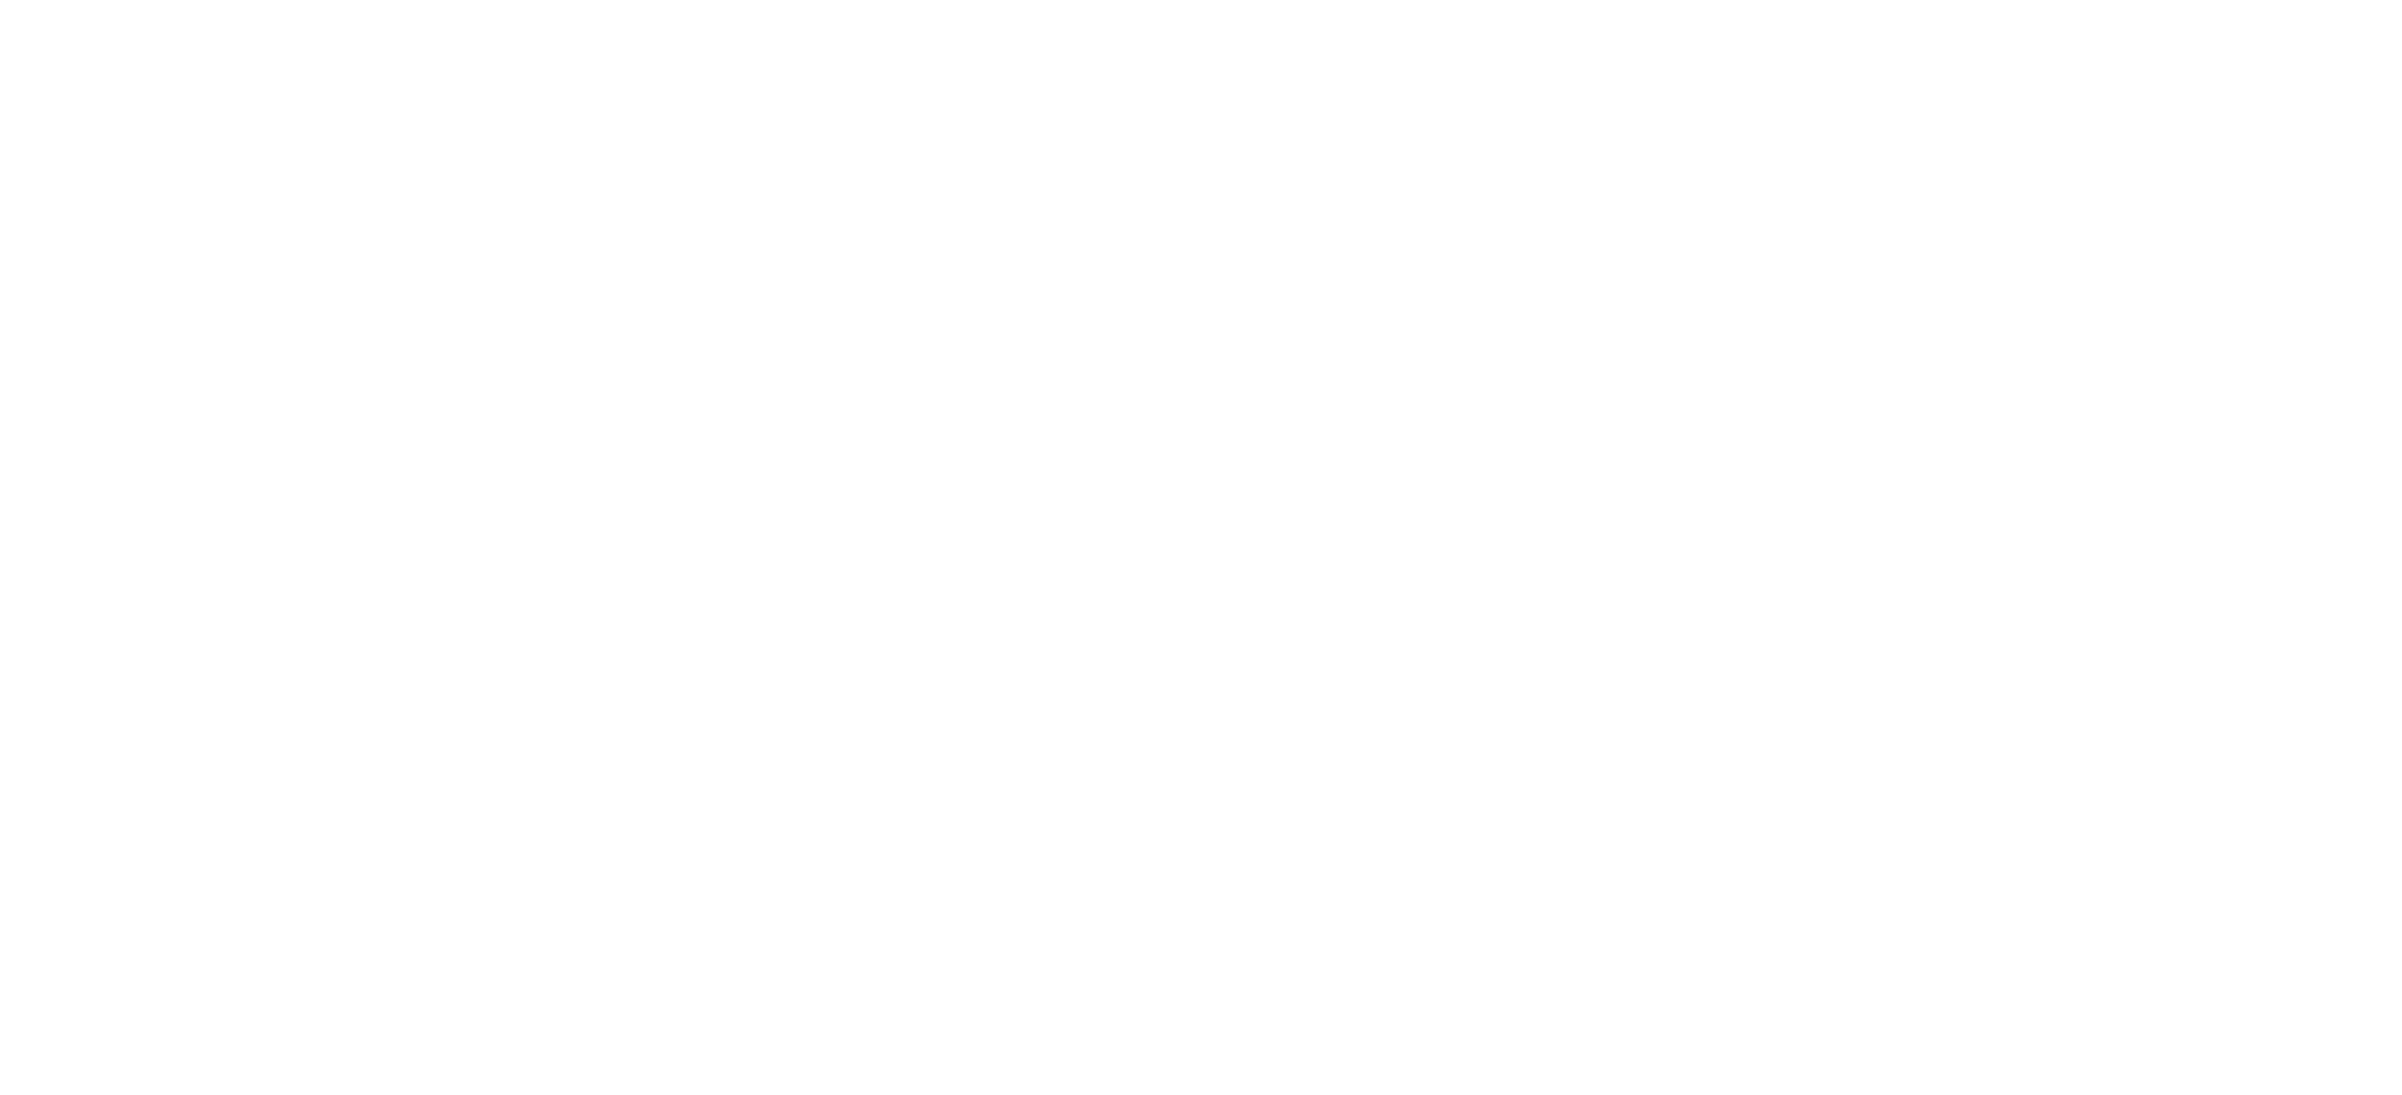 Green retailer website